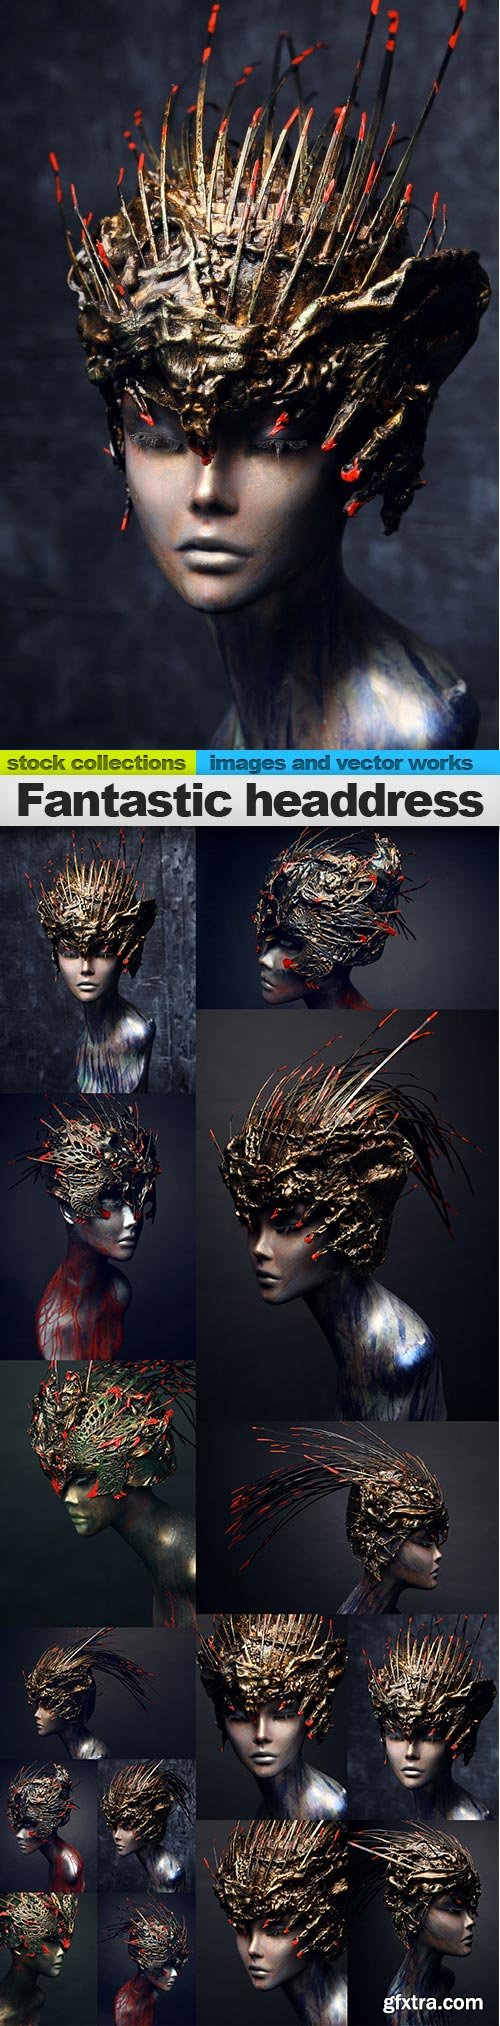 Fantastic headdress, 15 x UHQ JPEG